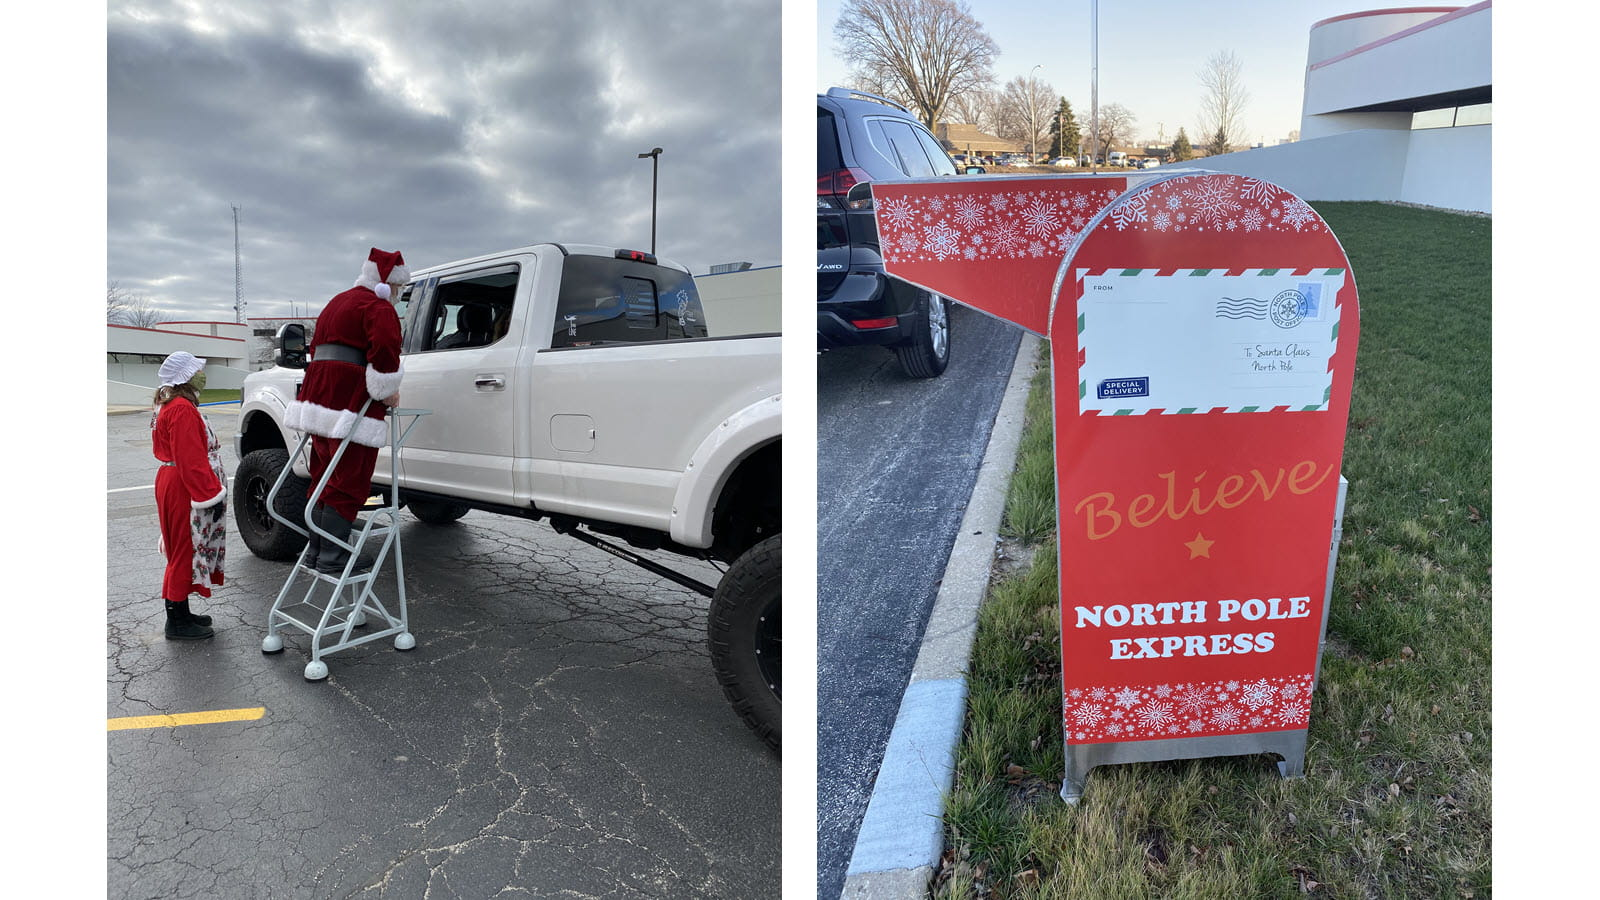 Santa climbs a ladder to greet kids in a pickup truck - Santa's mailbox